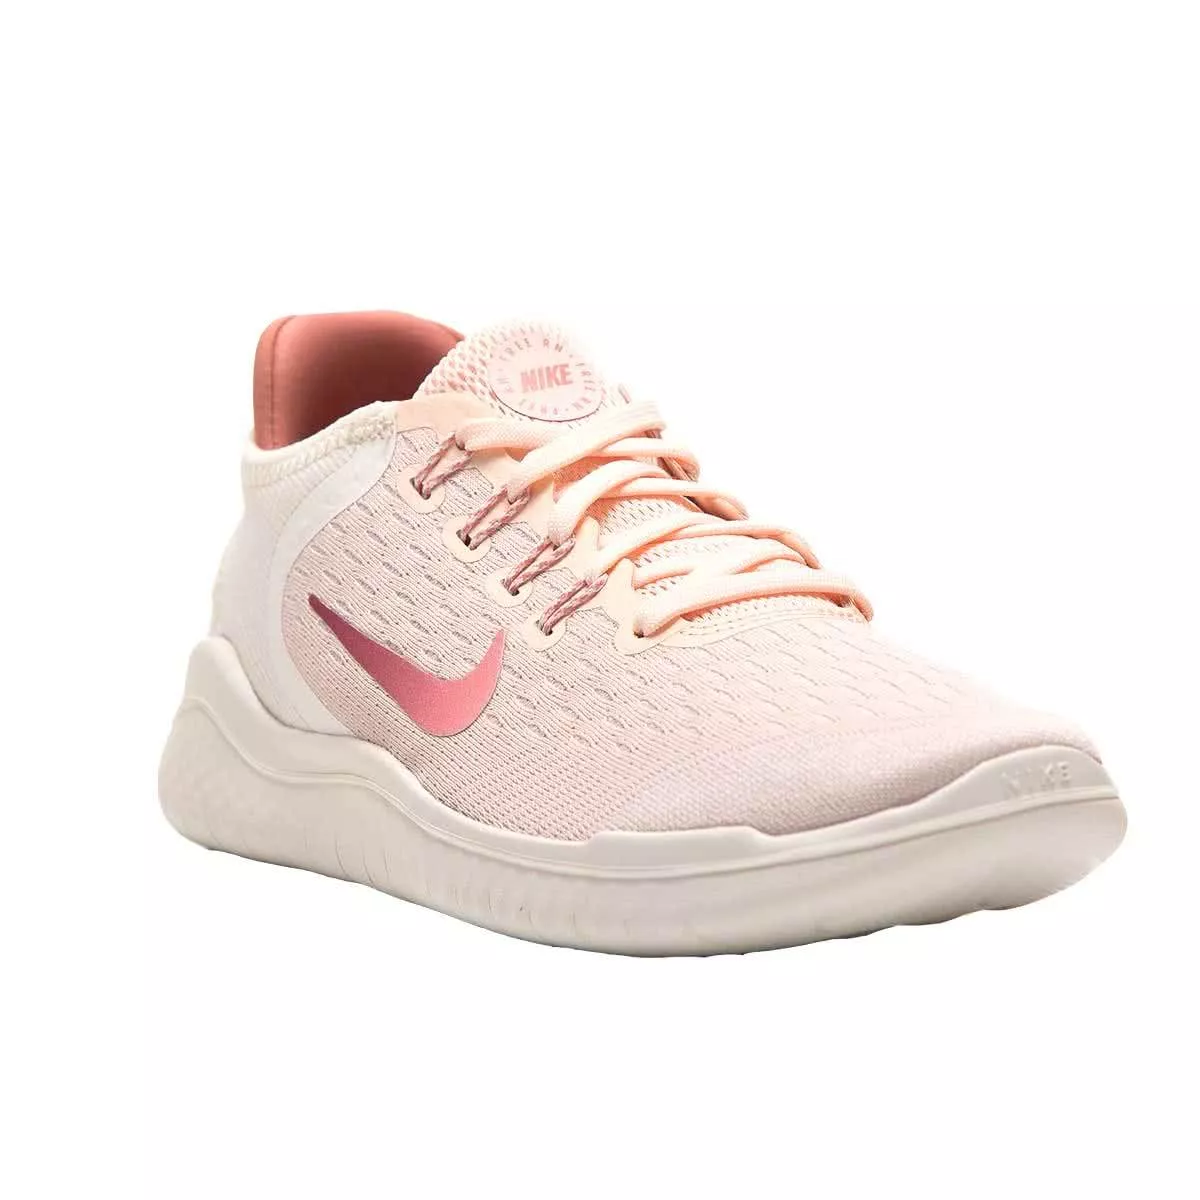 Nike Free RN 2018 Women's Running Shoes, Guava IceRust Pink